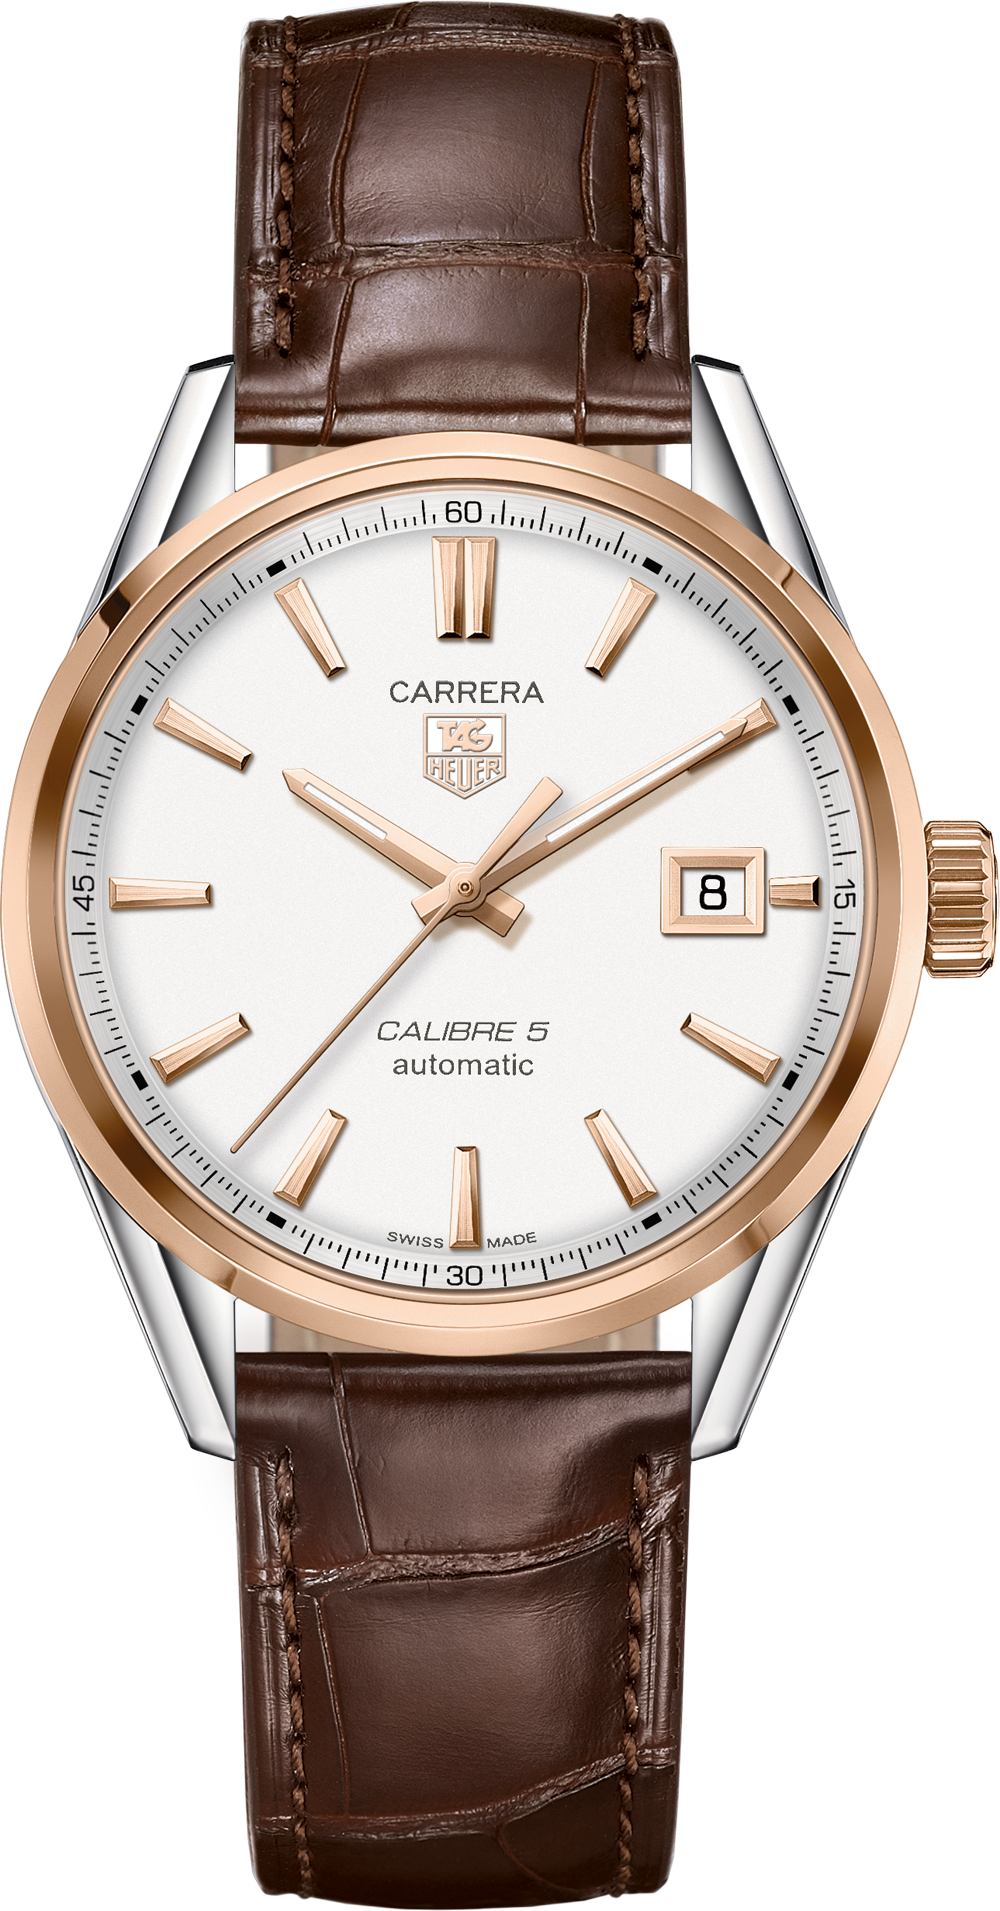 TAG HEUER CARRERA Calibre 5 in 2019 | watches